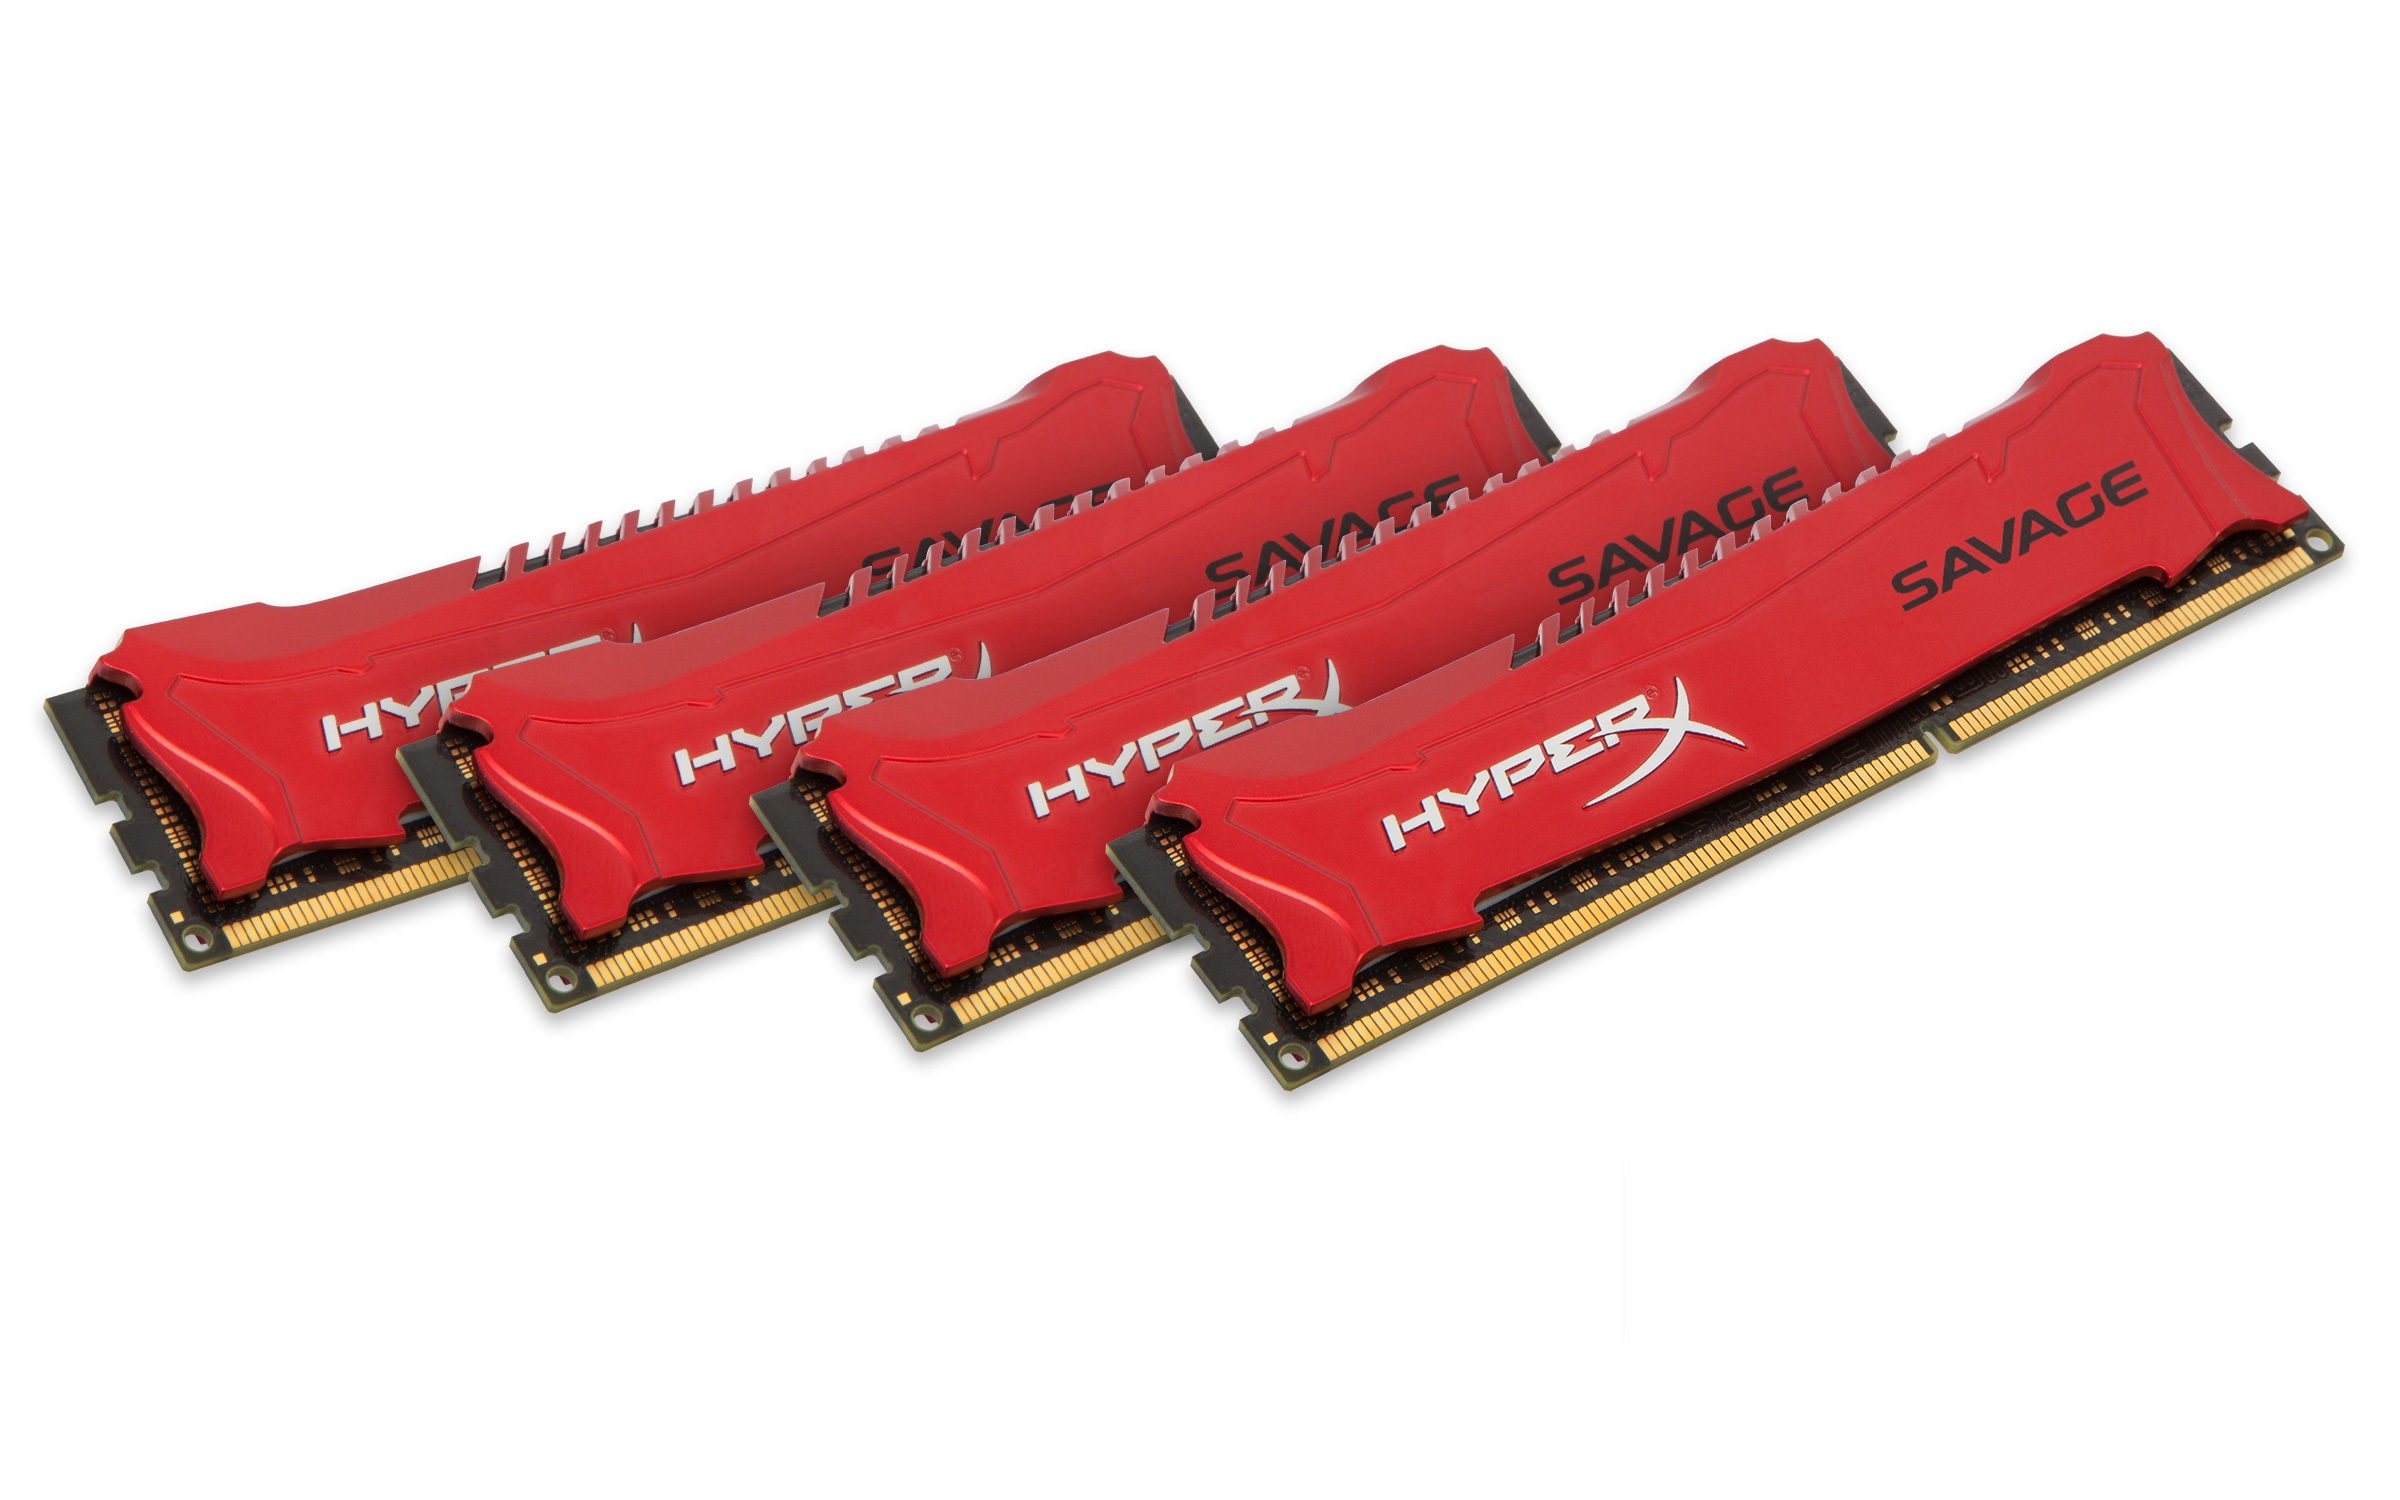 price of 32GB 2400MHz DDR3 CL11 DIMM (Kit of 4) XMP HyperX Savage Red on ShopHub | ecommerce, price check, start a business, sell online